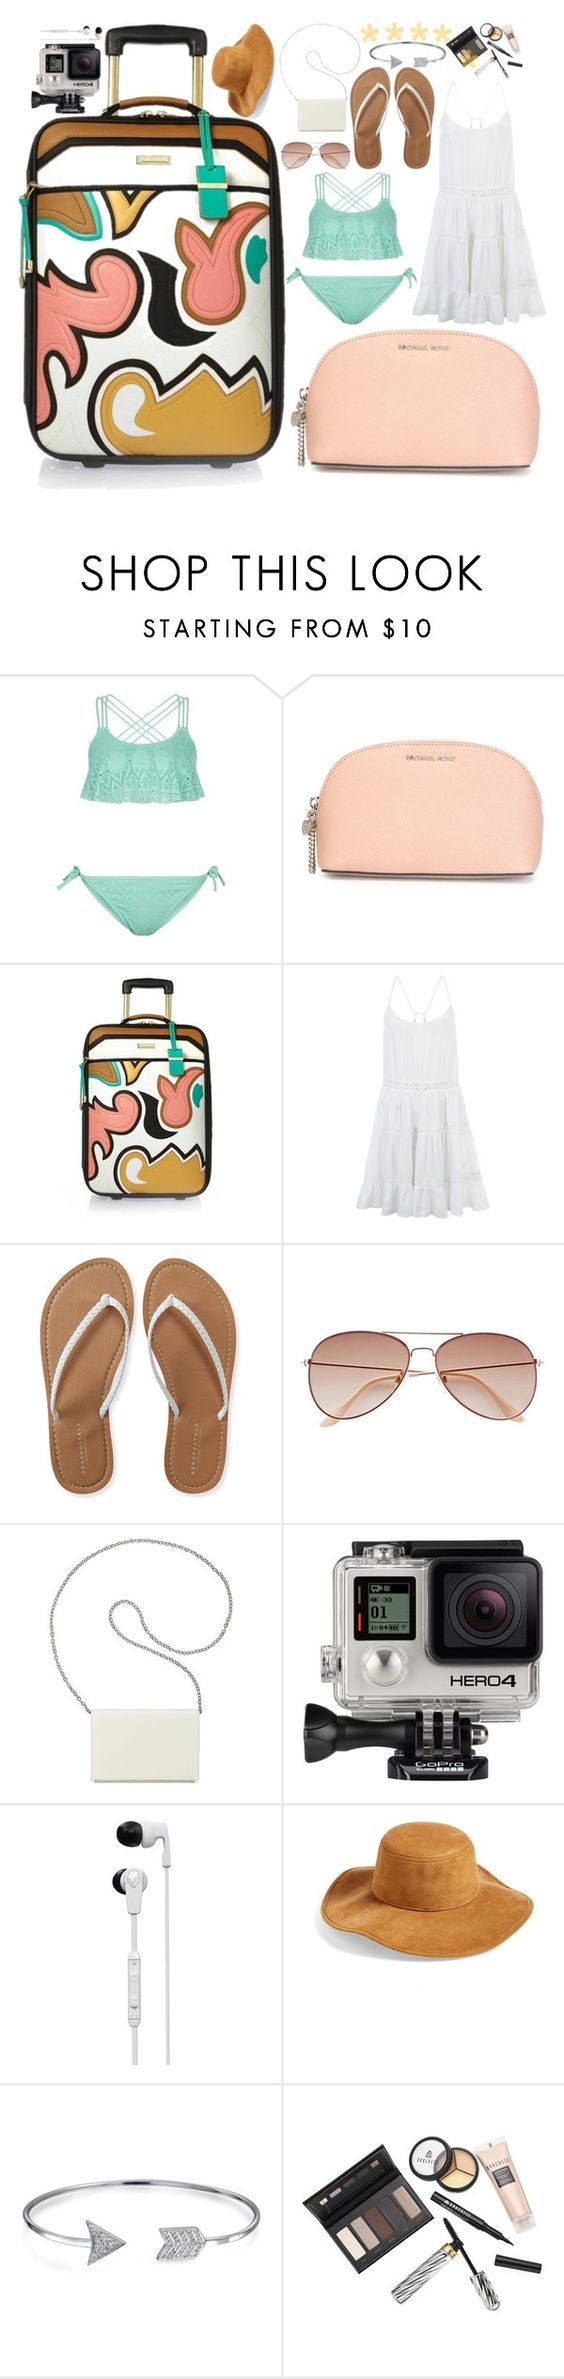 """""""Trip to Australia #67"""" by sophie-ericksen ❤ liked on Polyvore featuring New Look, MICHAEL Michael Kors, River Island, Accessorize, Aéropostale, H&M, Nine West, GoPro, Skullcandy and Collection XIIX"""